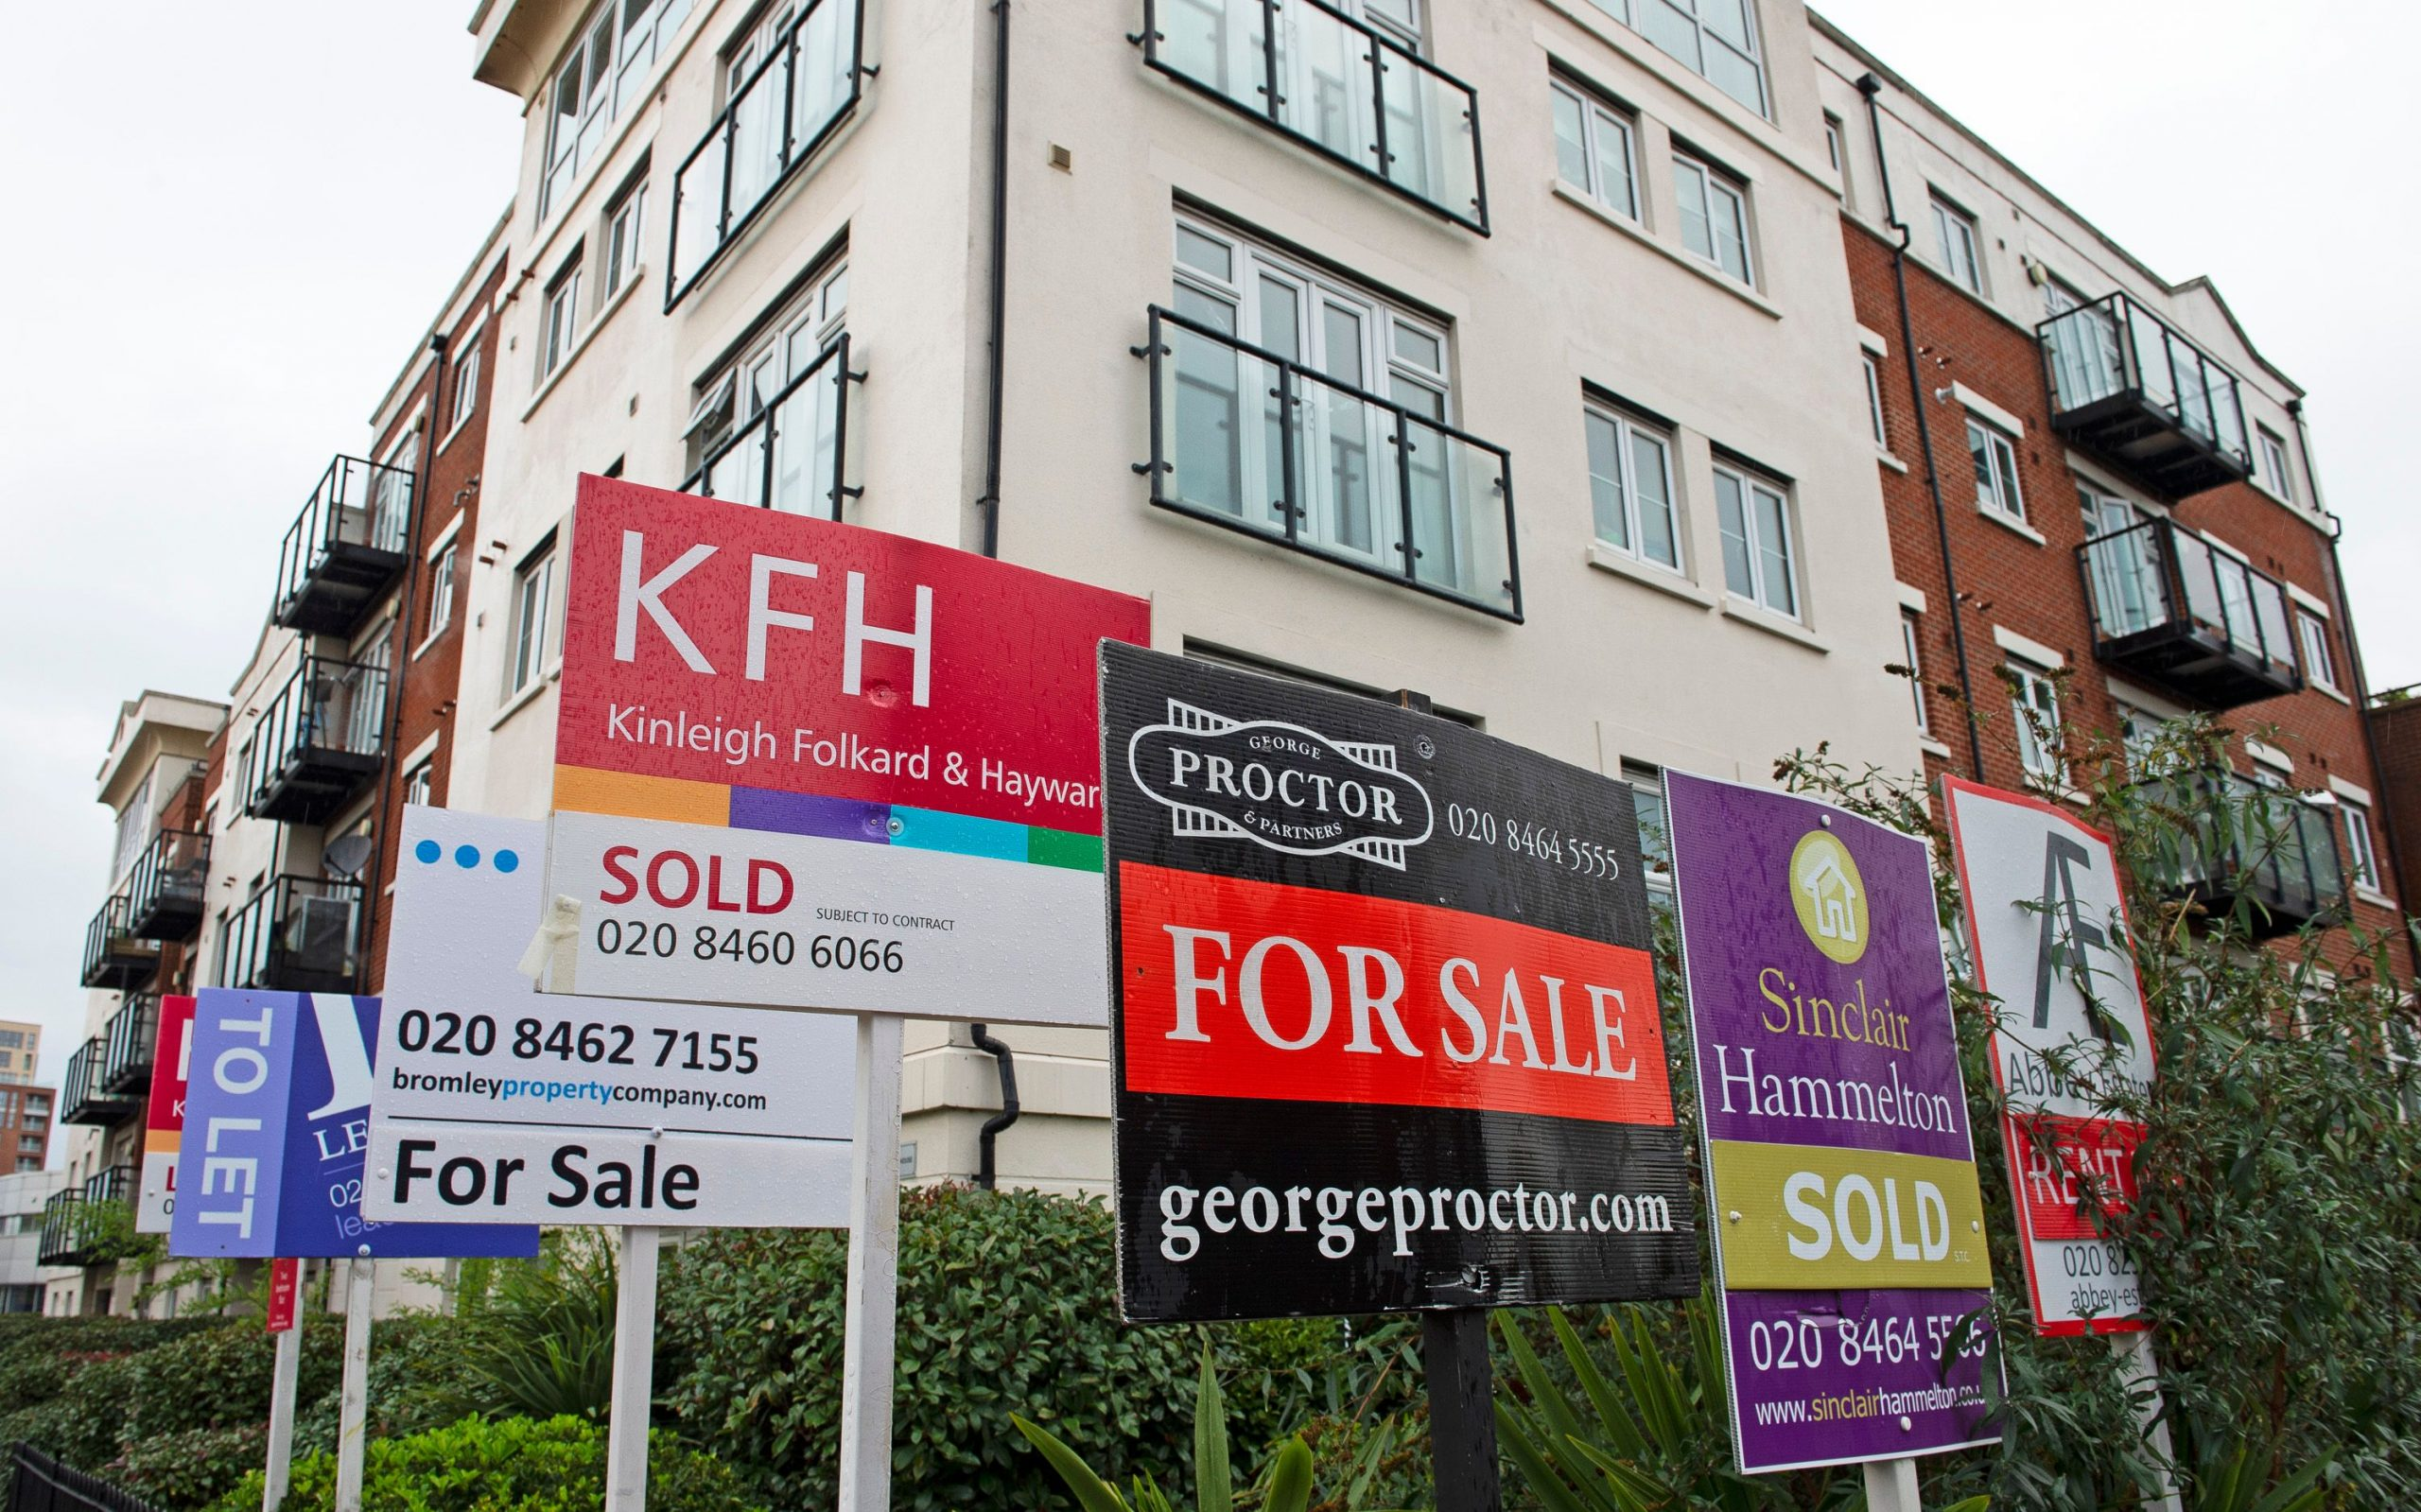 an image of several estate agent signs outside a building